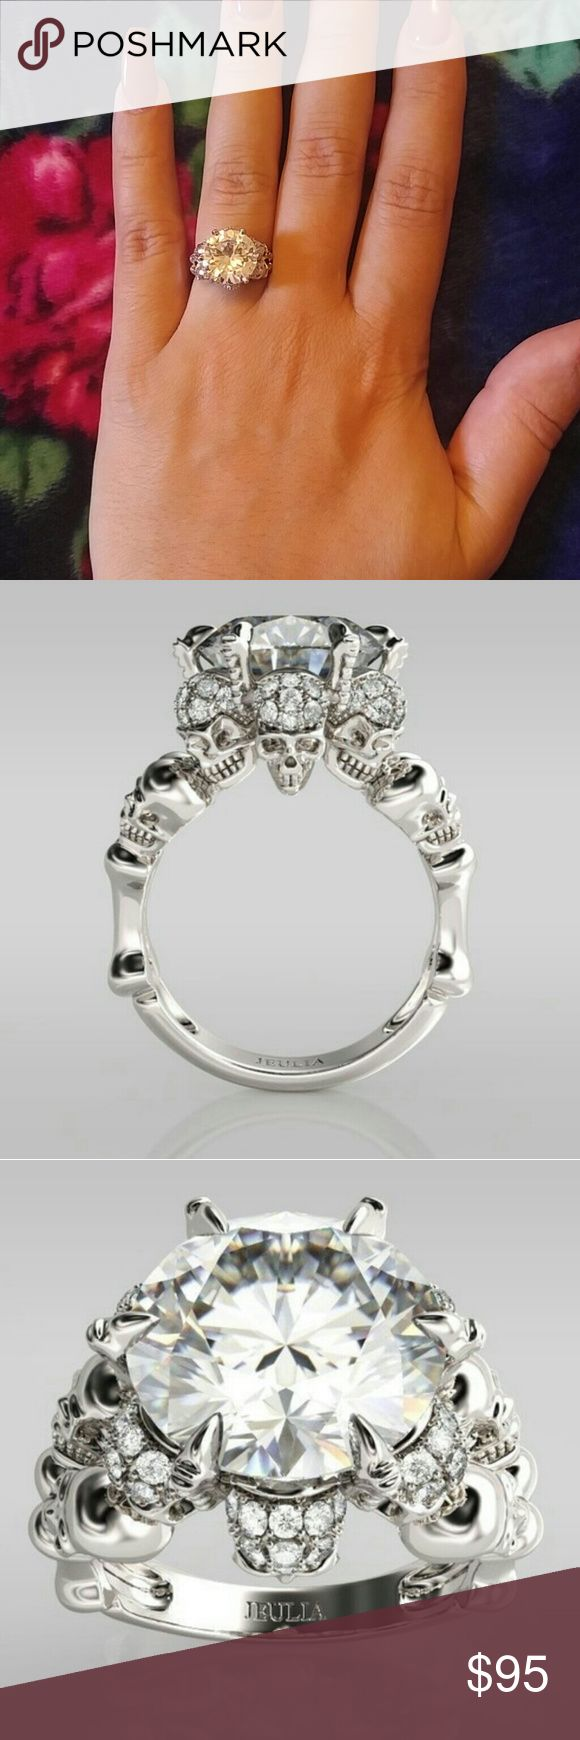 Skull Wedding/Engagement Ring Women's 925 Sterling Silver Six Skull Shape White 5.27CT Sapphire Round Cut Engagement & Wedding Ring Size 6 *New* ***It doesn't have the Jeulia stamped on ring*** Jewelry Rings